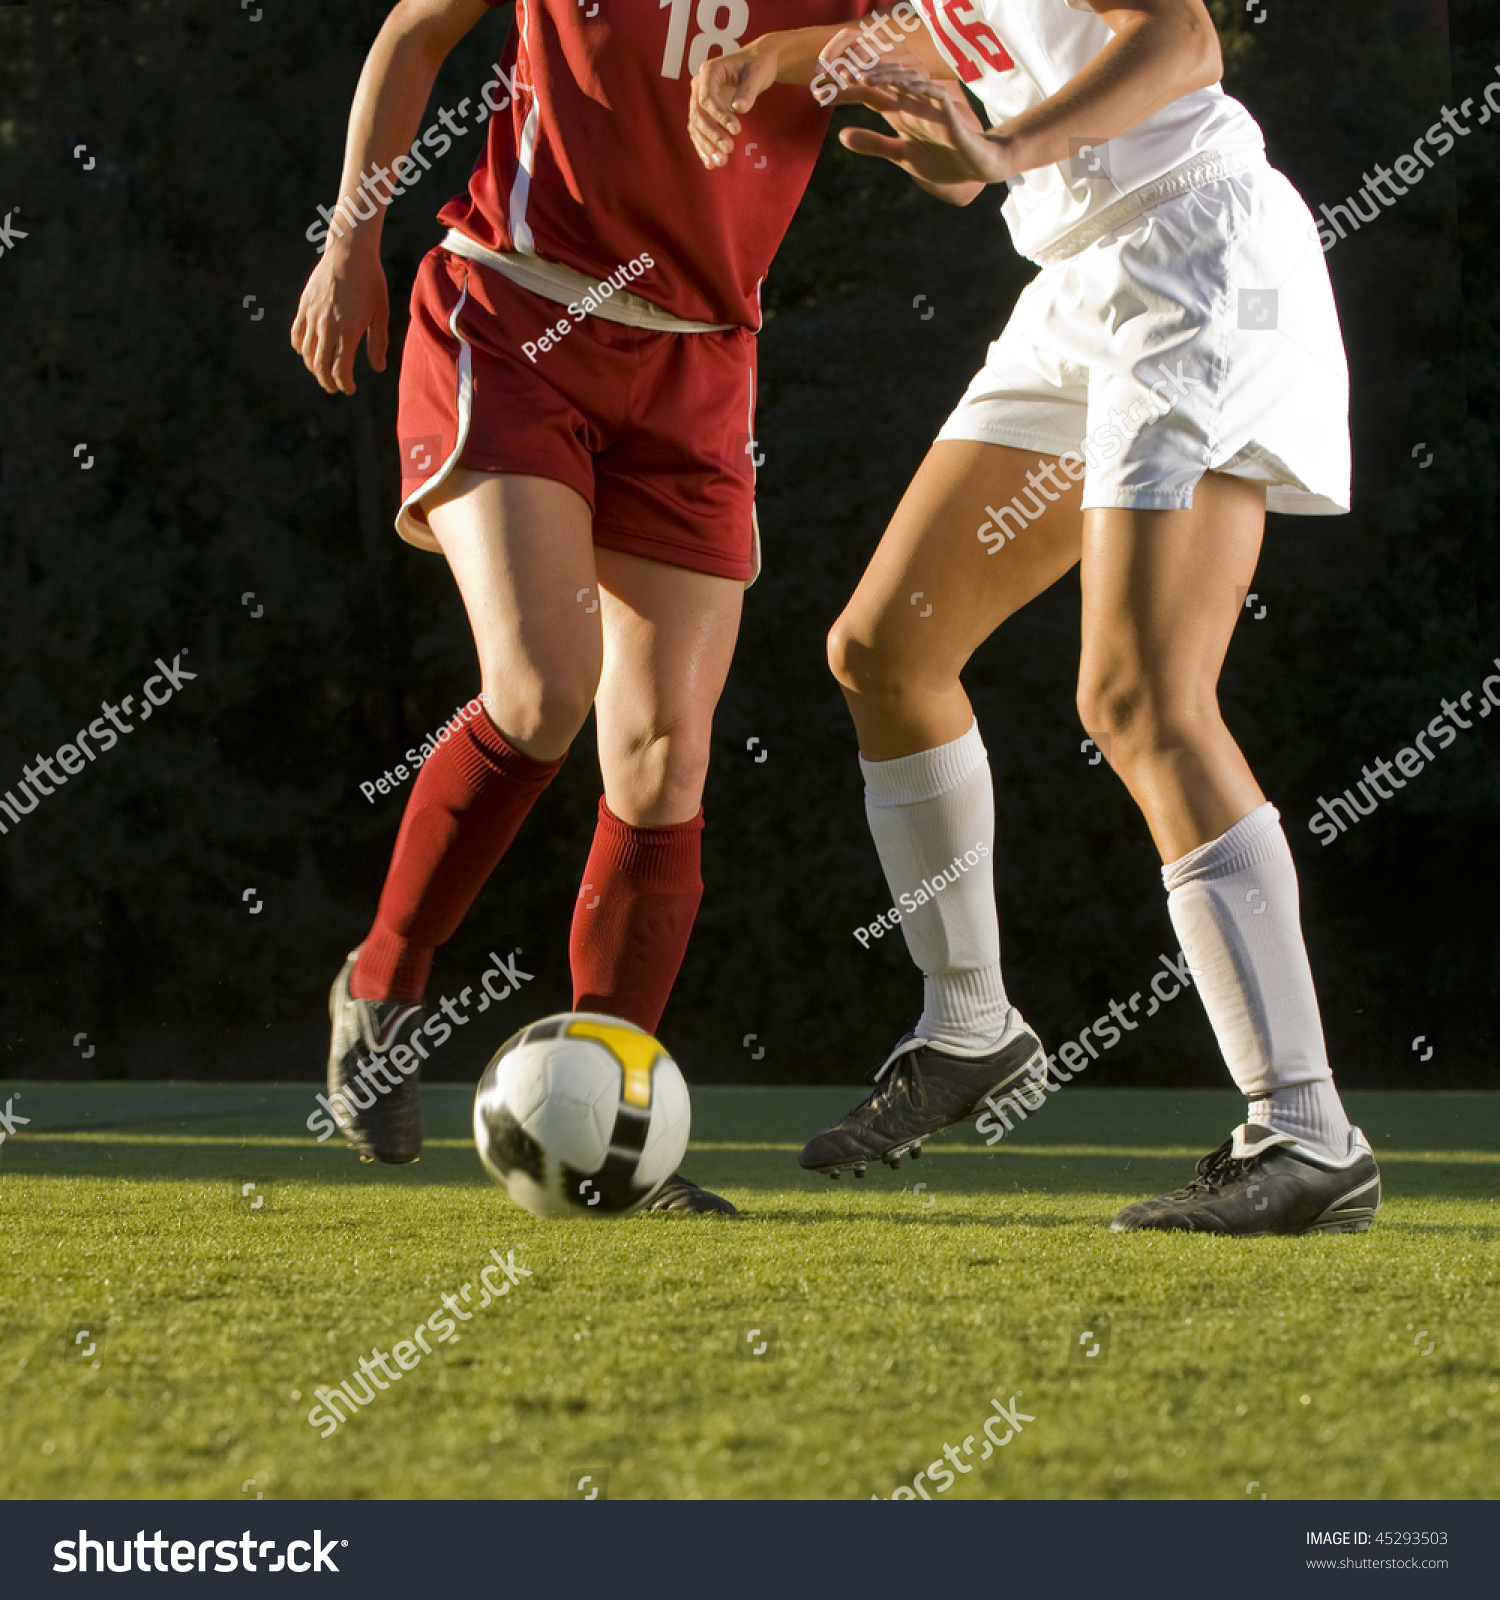 Soccer field with ball and players